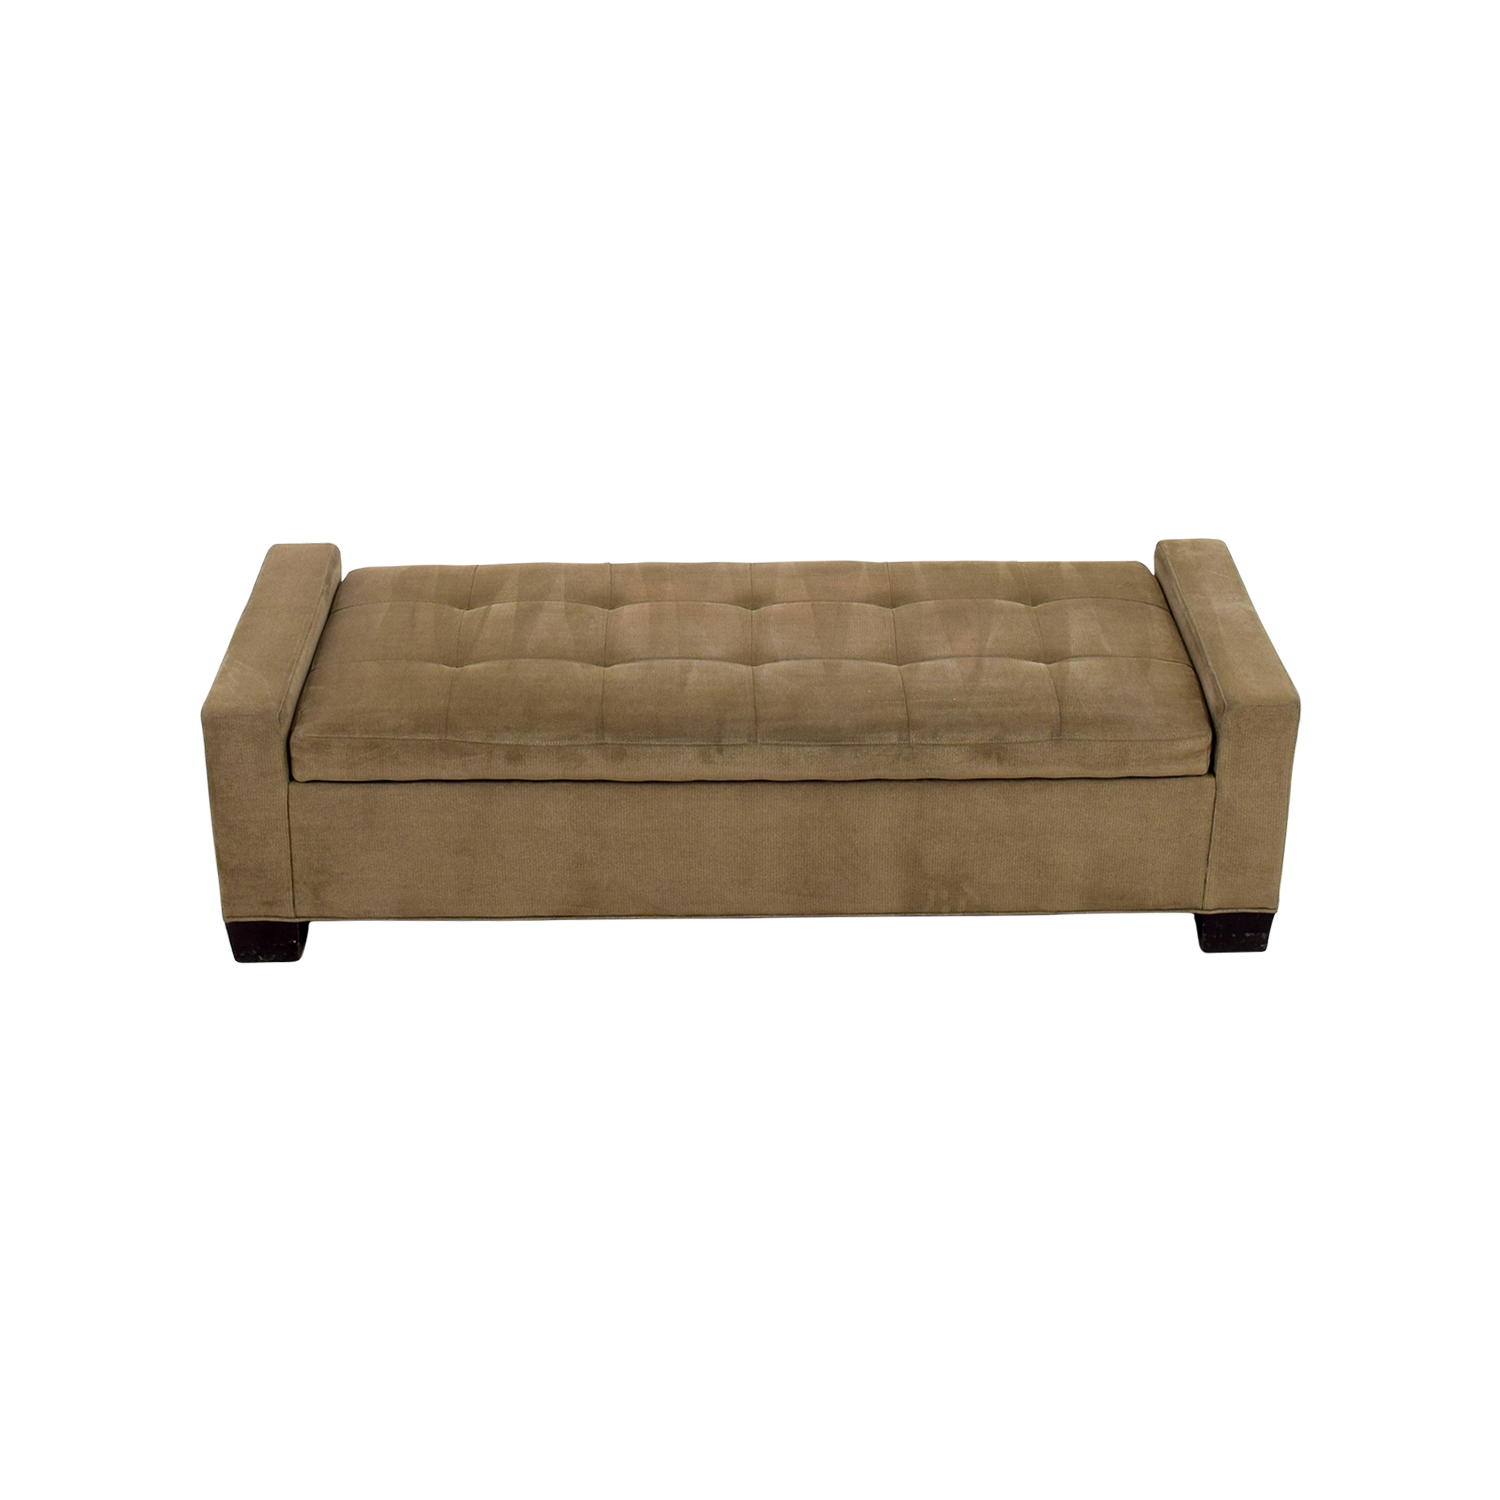 buy Crate & Barrel Brown Tufted Daybed or Storage Bench Crate & Barrel Benches